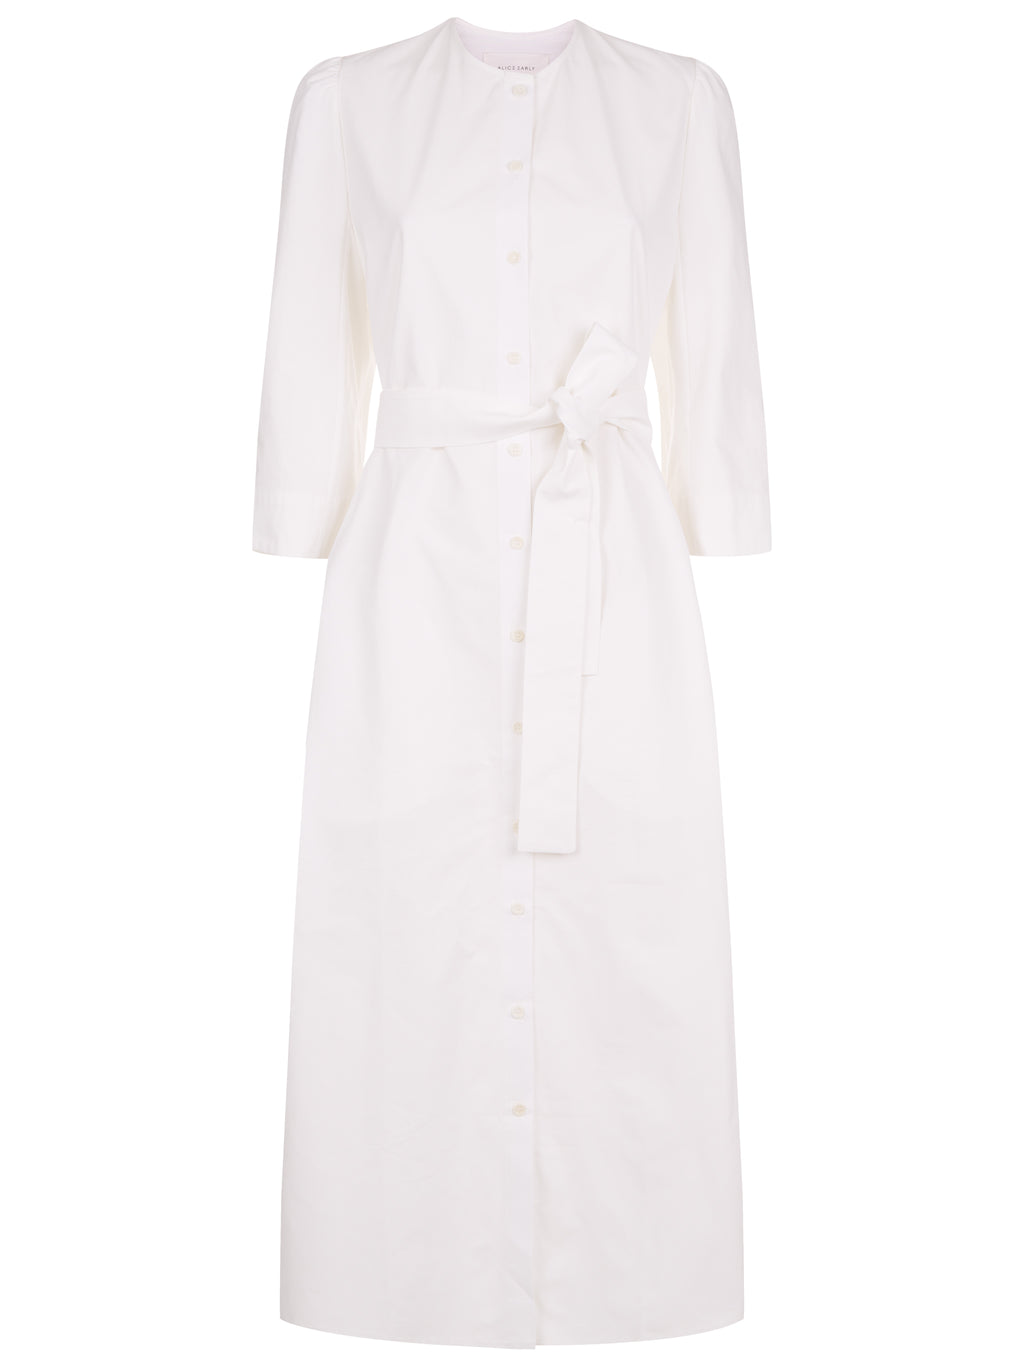 The Raminta Shirt Dress - White - Alice Early